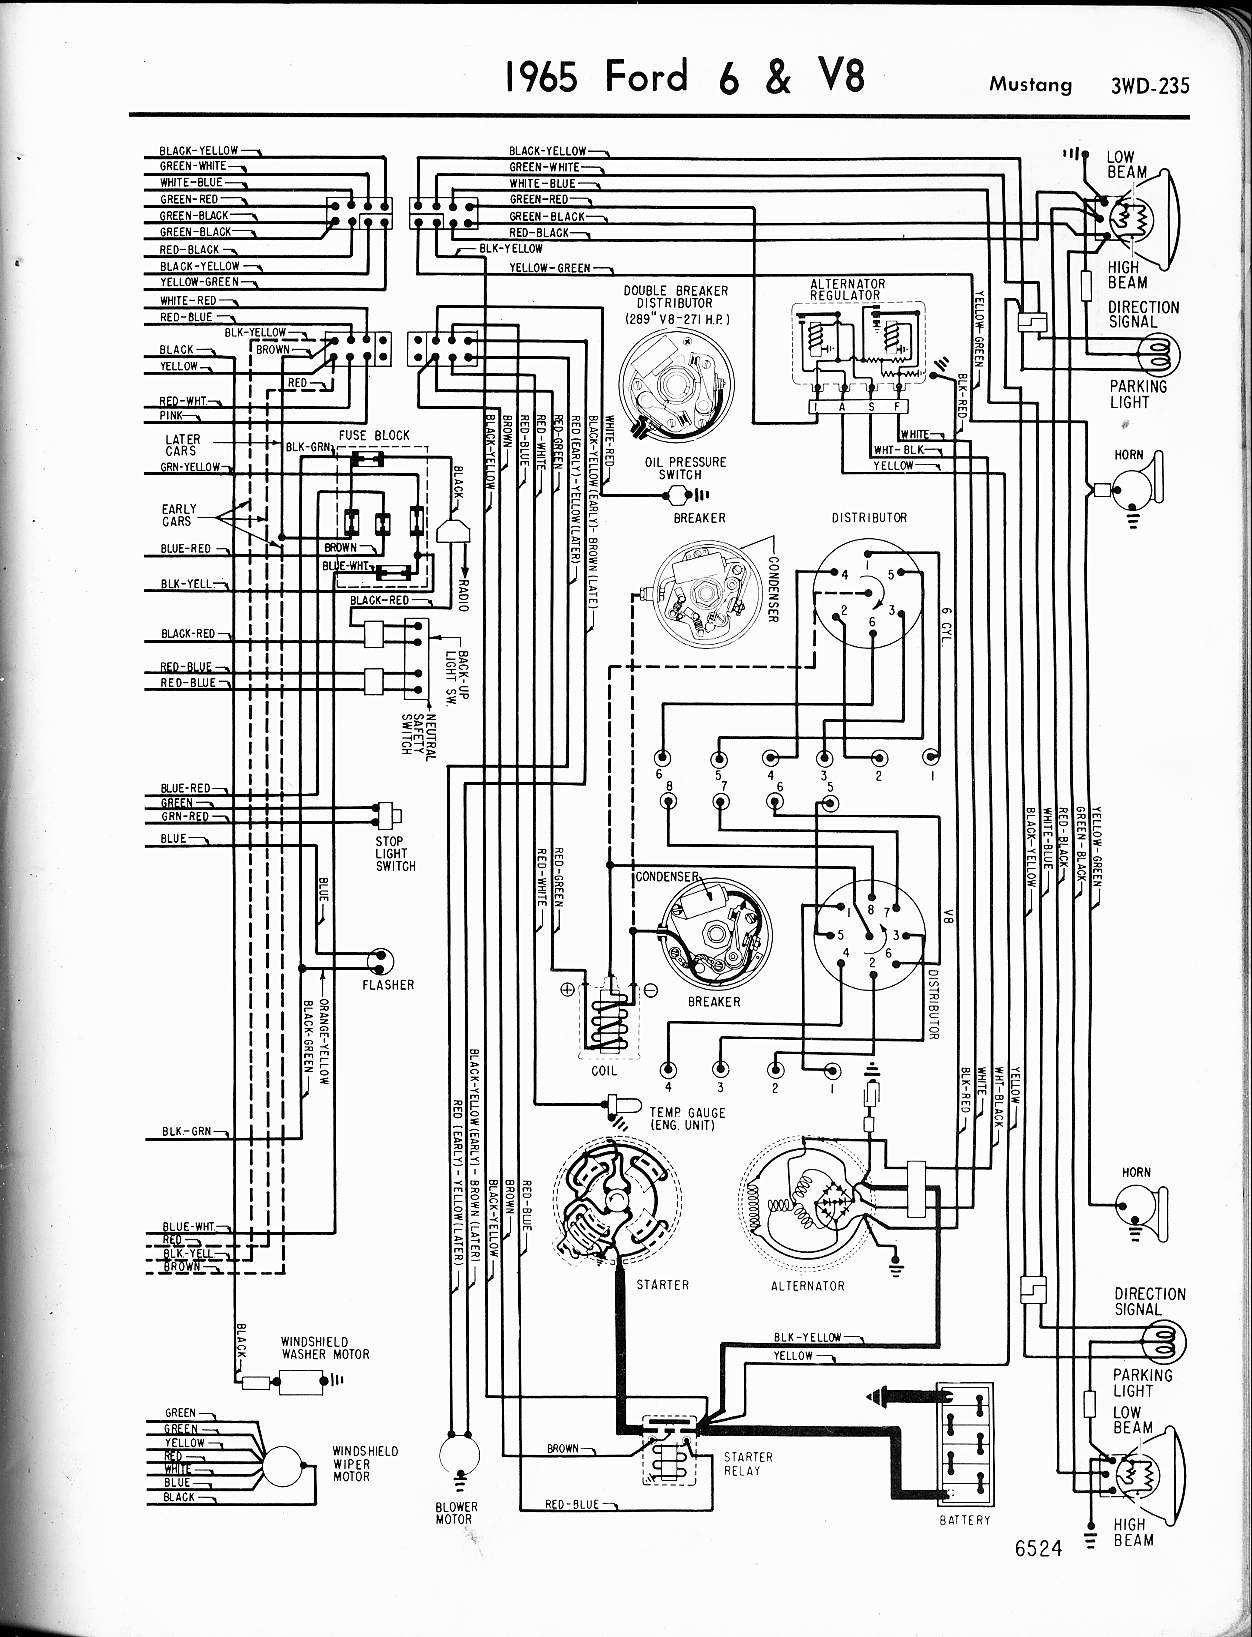 Ford Diagrams on 1971 mustang wiring schematic, 2001 mustang wiring schematic, 1965 mustang steering schematic, 1964 mustang wiring schematic, 2005 mustang wiring schematic, 1967 mustang wiring schematic, 1968 mustang wiring schematic, 1957 chevrolet truck wiring schematic, 1967 gto wiring schematic, 2000 mustang wiring schematic, ford wiring schematic, 2006 mustang wiring schematic, 1967 camaro wiring schematic, 1966 mustang wiring schematic, 1970 mustang wiring schematic, 2008 mustang wiring schematic, 66 mustang wiring schematic, 65 mustang wiring schematic, 1969 camaro wiring schematic, 2002 mustang wiring schematic,